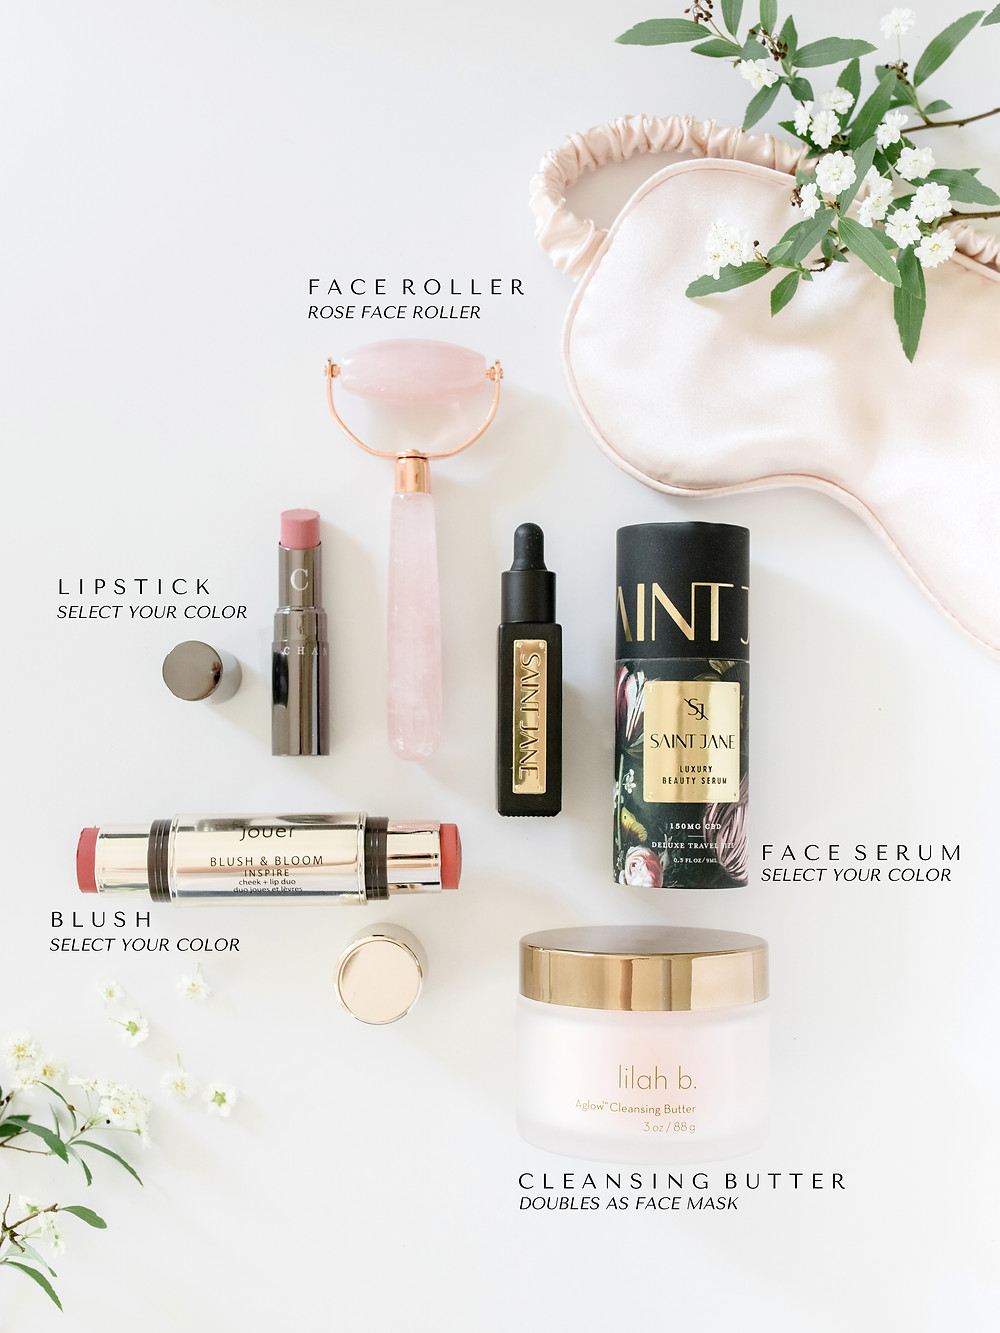 CLEAN BEAUTY PRODUCTS JUST FOR MOM